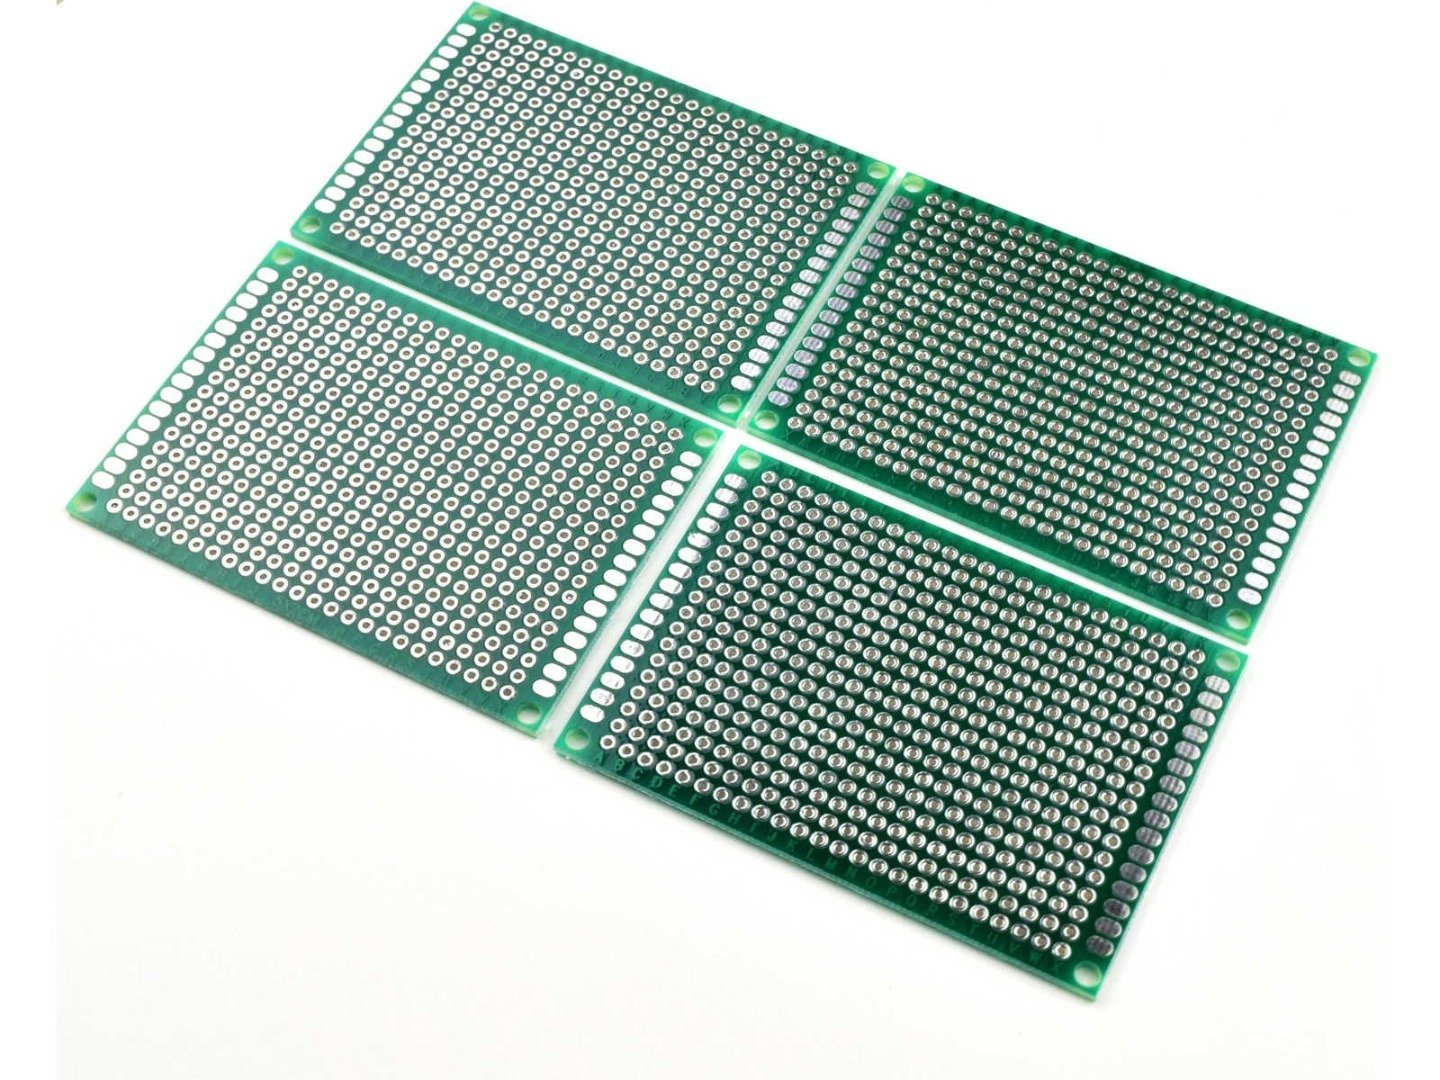 15CM Aluminium PCB Circuit Board for 6 x 1w,3w,5w LED in Series connection FBB